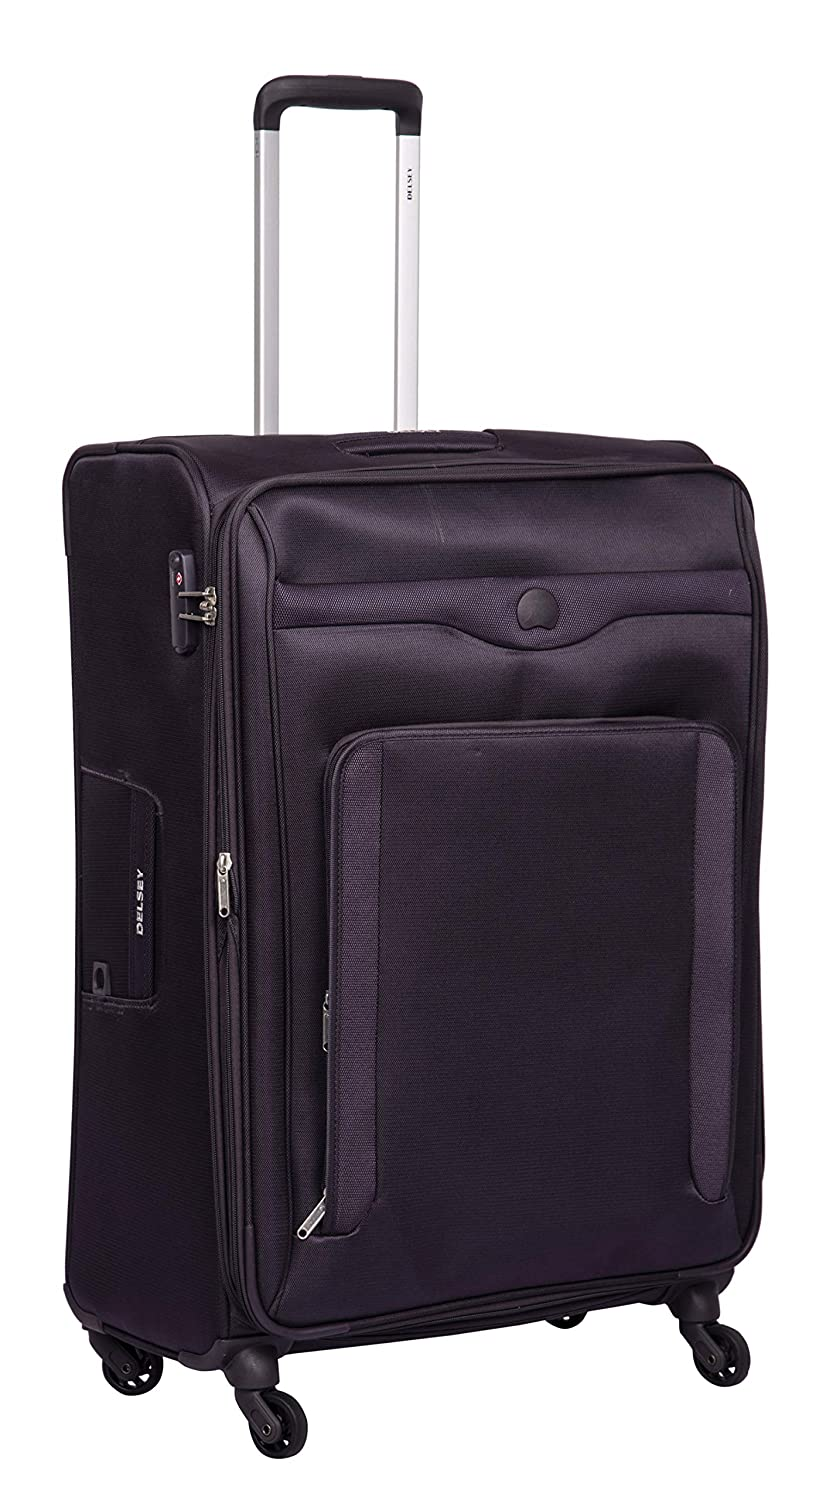 Delsey Baikal Polyester 78 Cm 4 Wheels Anthracite Large Soft Suitcase